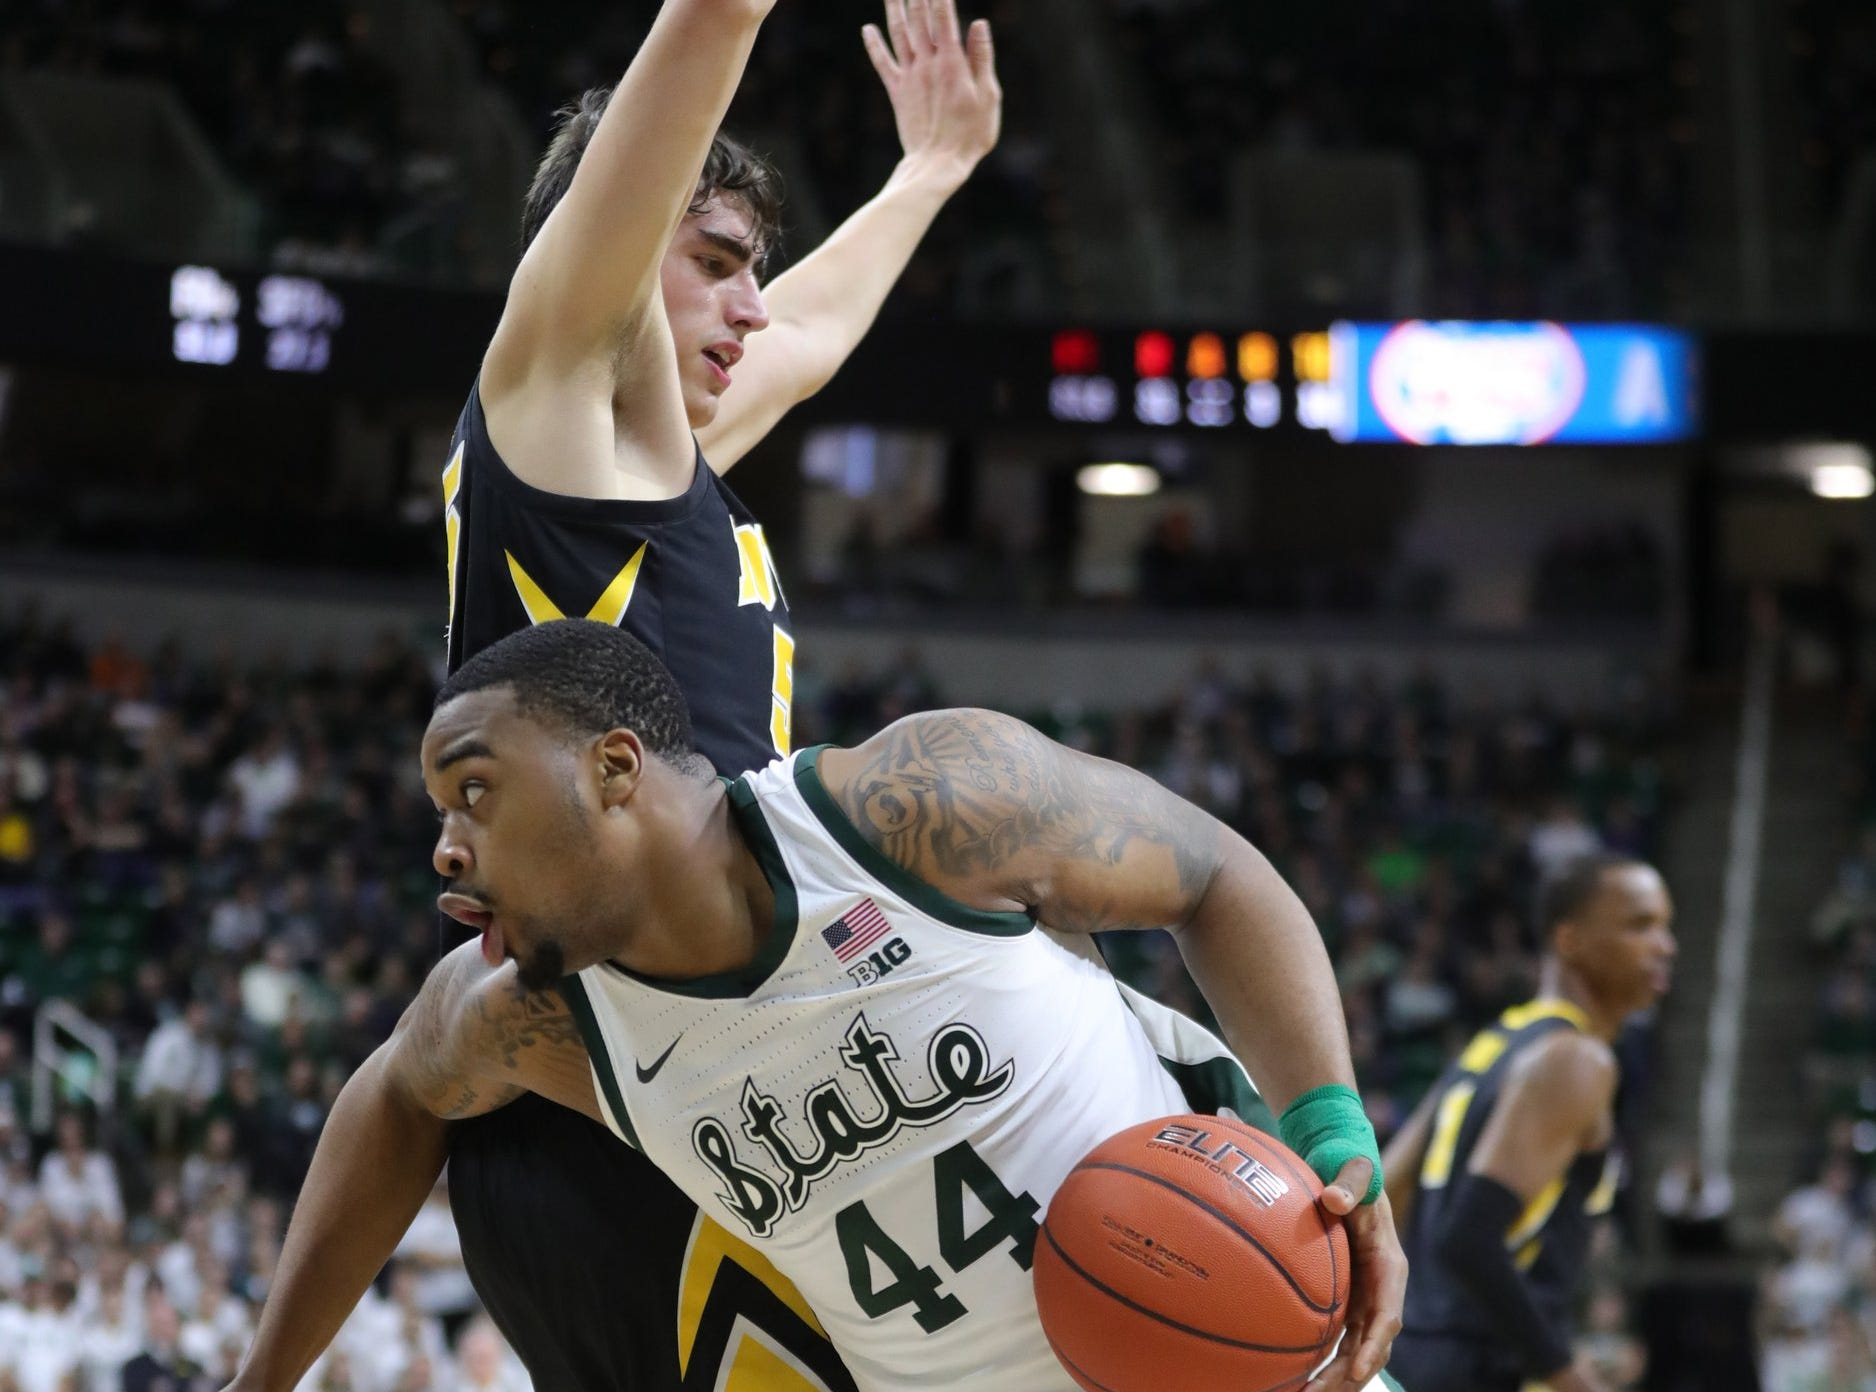 Michigan State forward Nick Ward drives against Iowa forward Luka Garza during second half action Monday, December 3, 2018 at the Breslin Center in East Lansing, Mich.